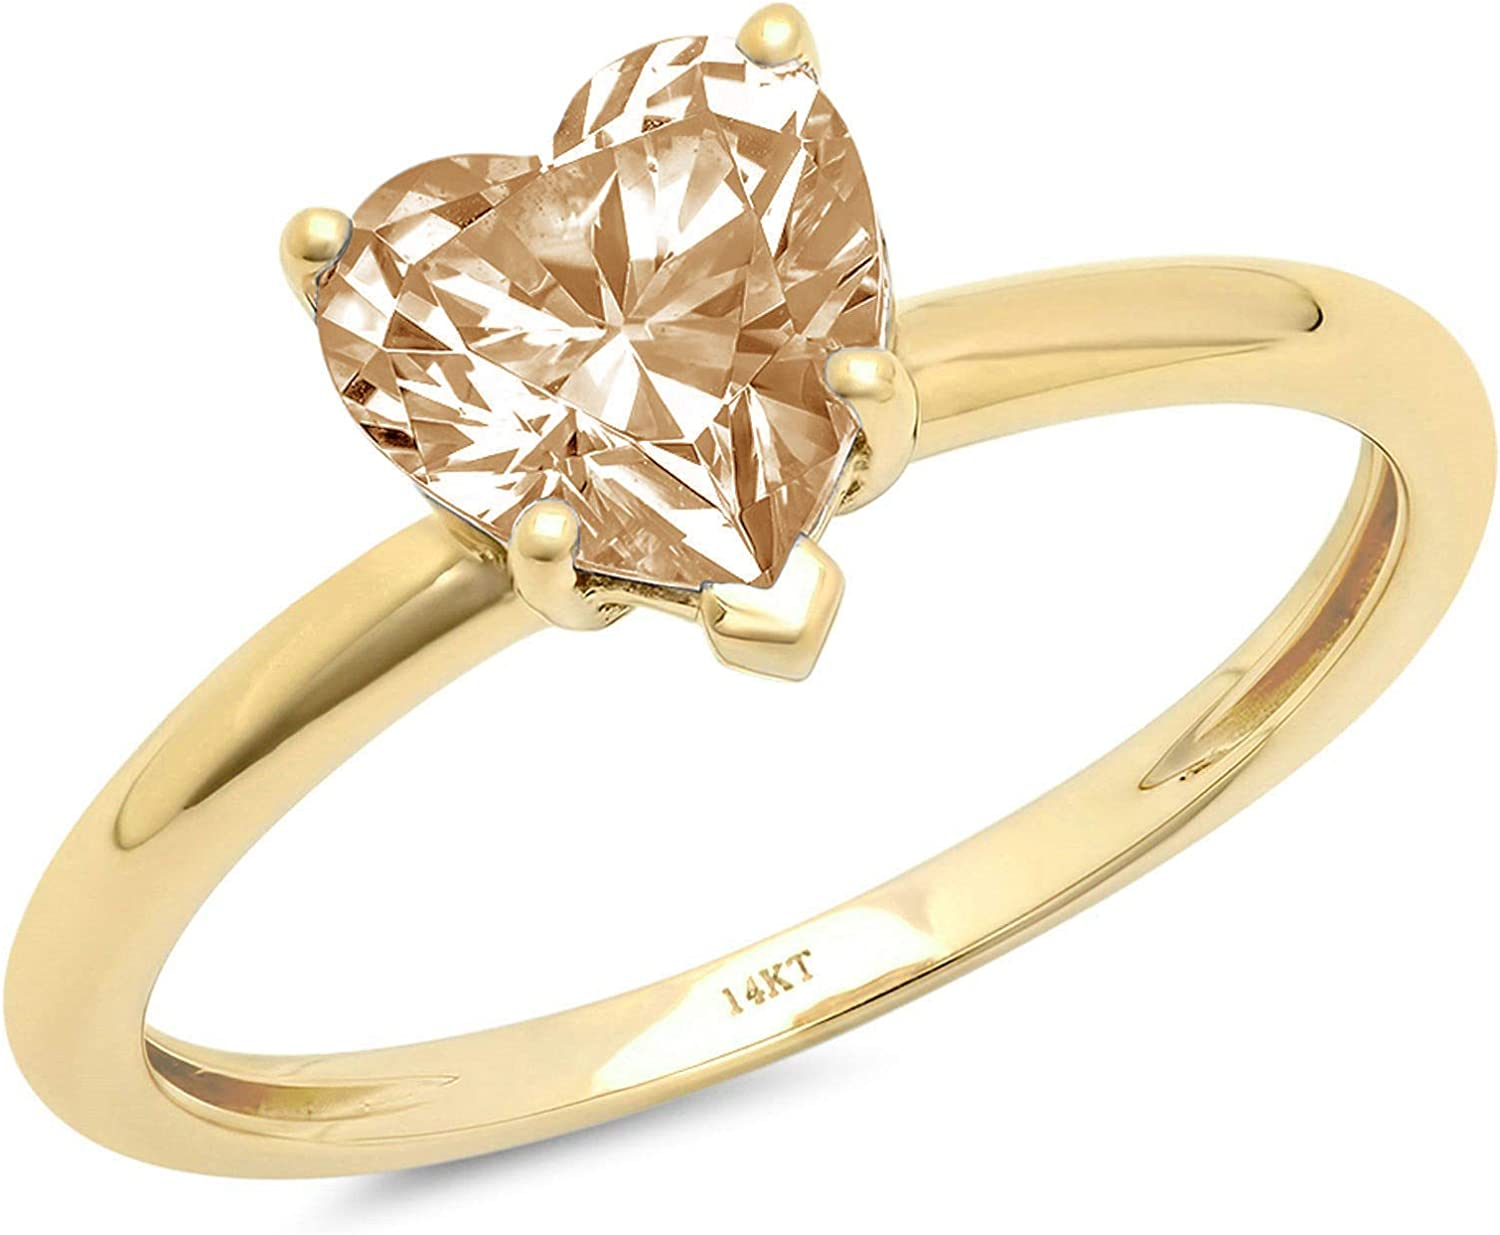 1.0 ct Brilliant Heart Cut Solitaire Flawless Stunning Yellow Moissanite Ideal 5-Prong Engagement Wedding Bridal Promise Anniversary Designer Ring Solid 18K Yellow Gold for Women